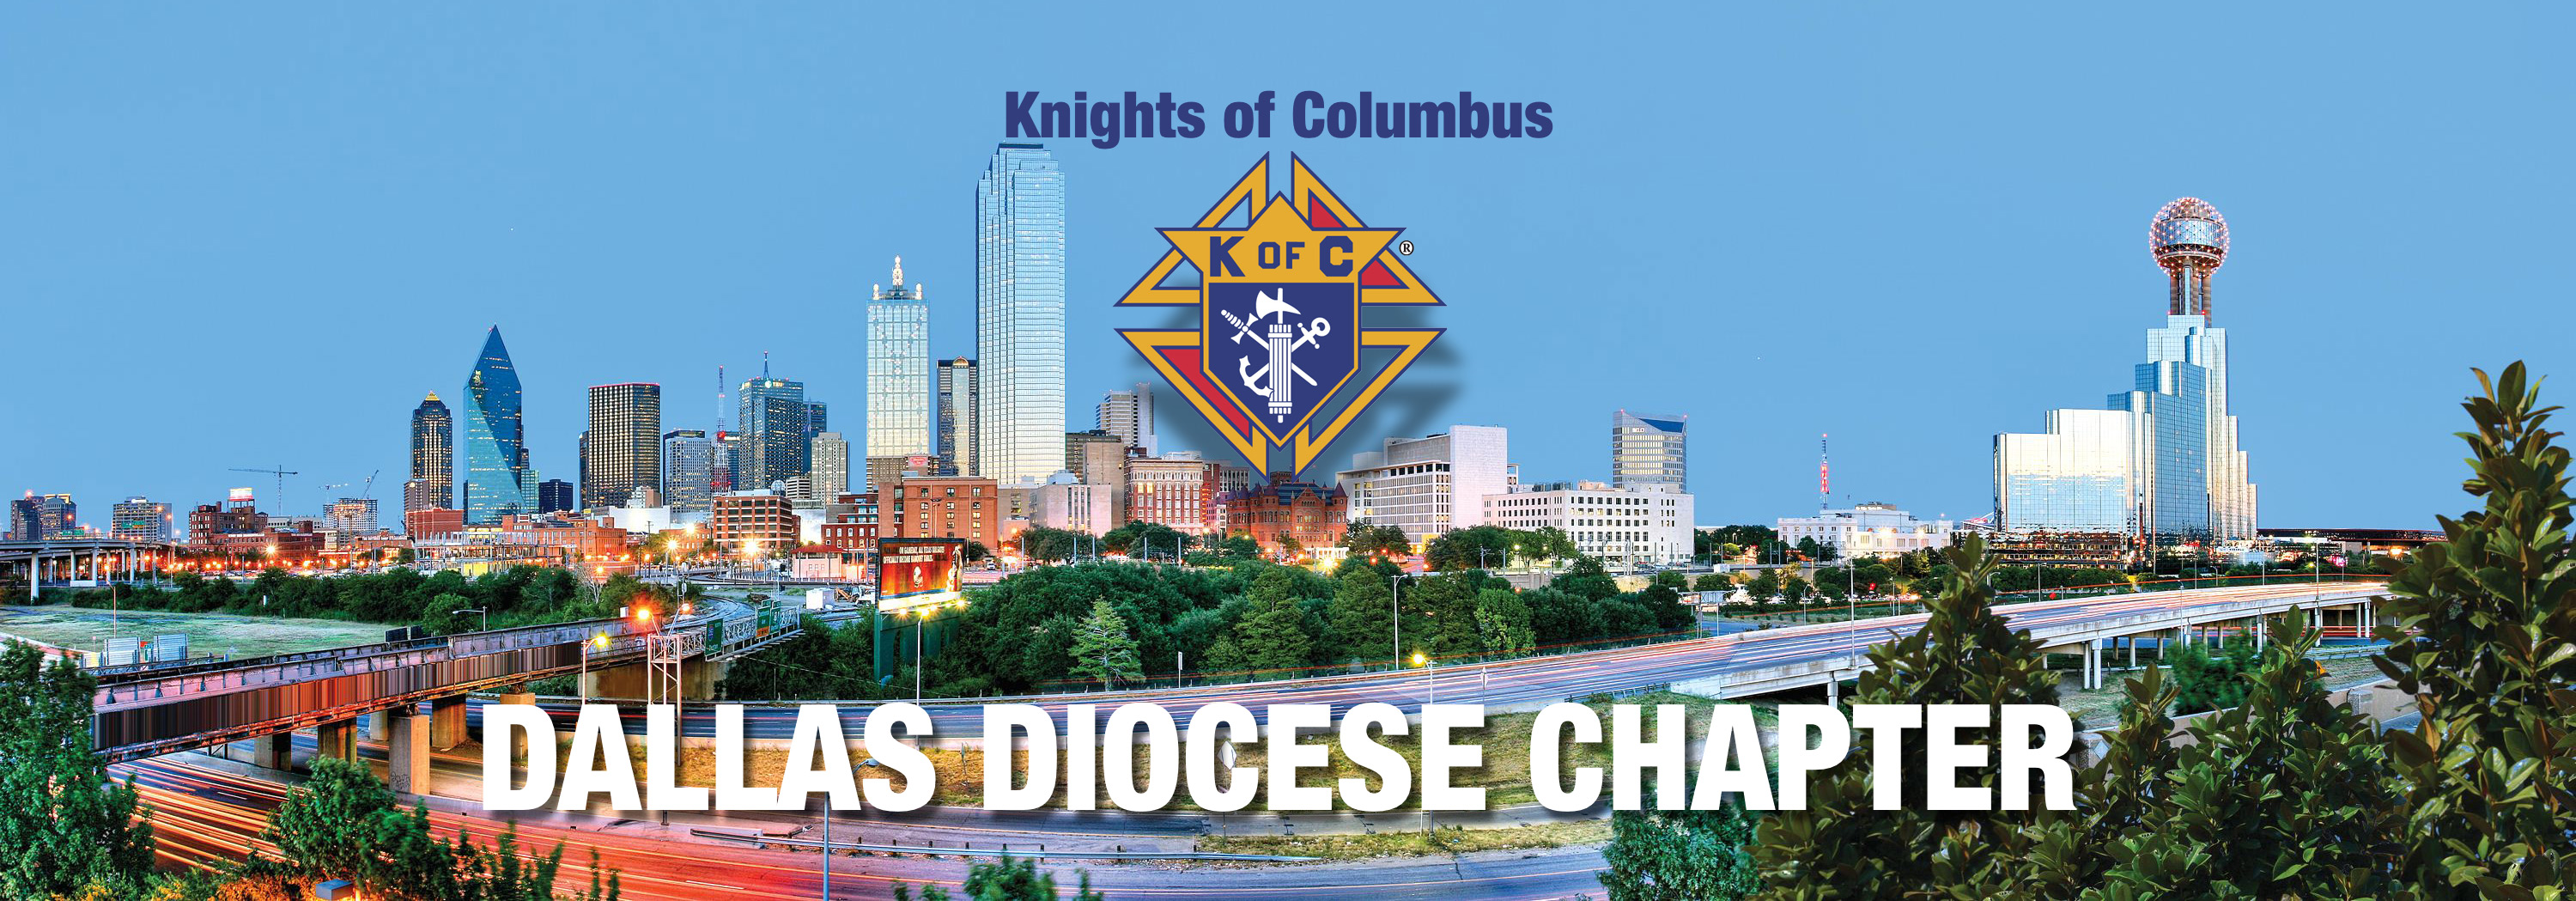 KofC Dallas Diocese Chapter